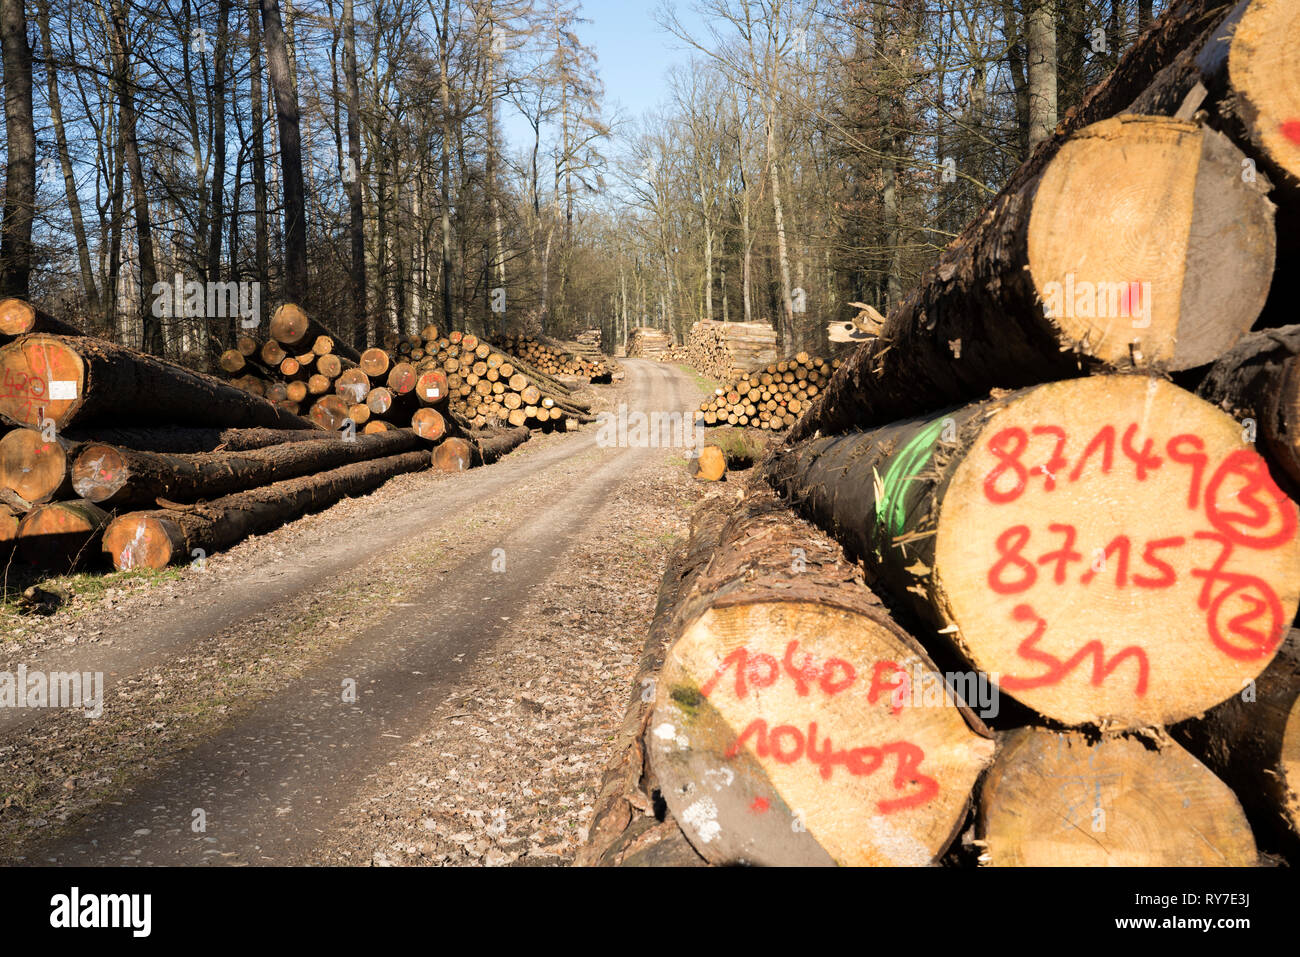 Forestry after Cyclone Friederike, near Oberweser, Weser Uplands, Weserbergland, Hesse, Germany Stock Photo